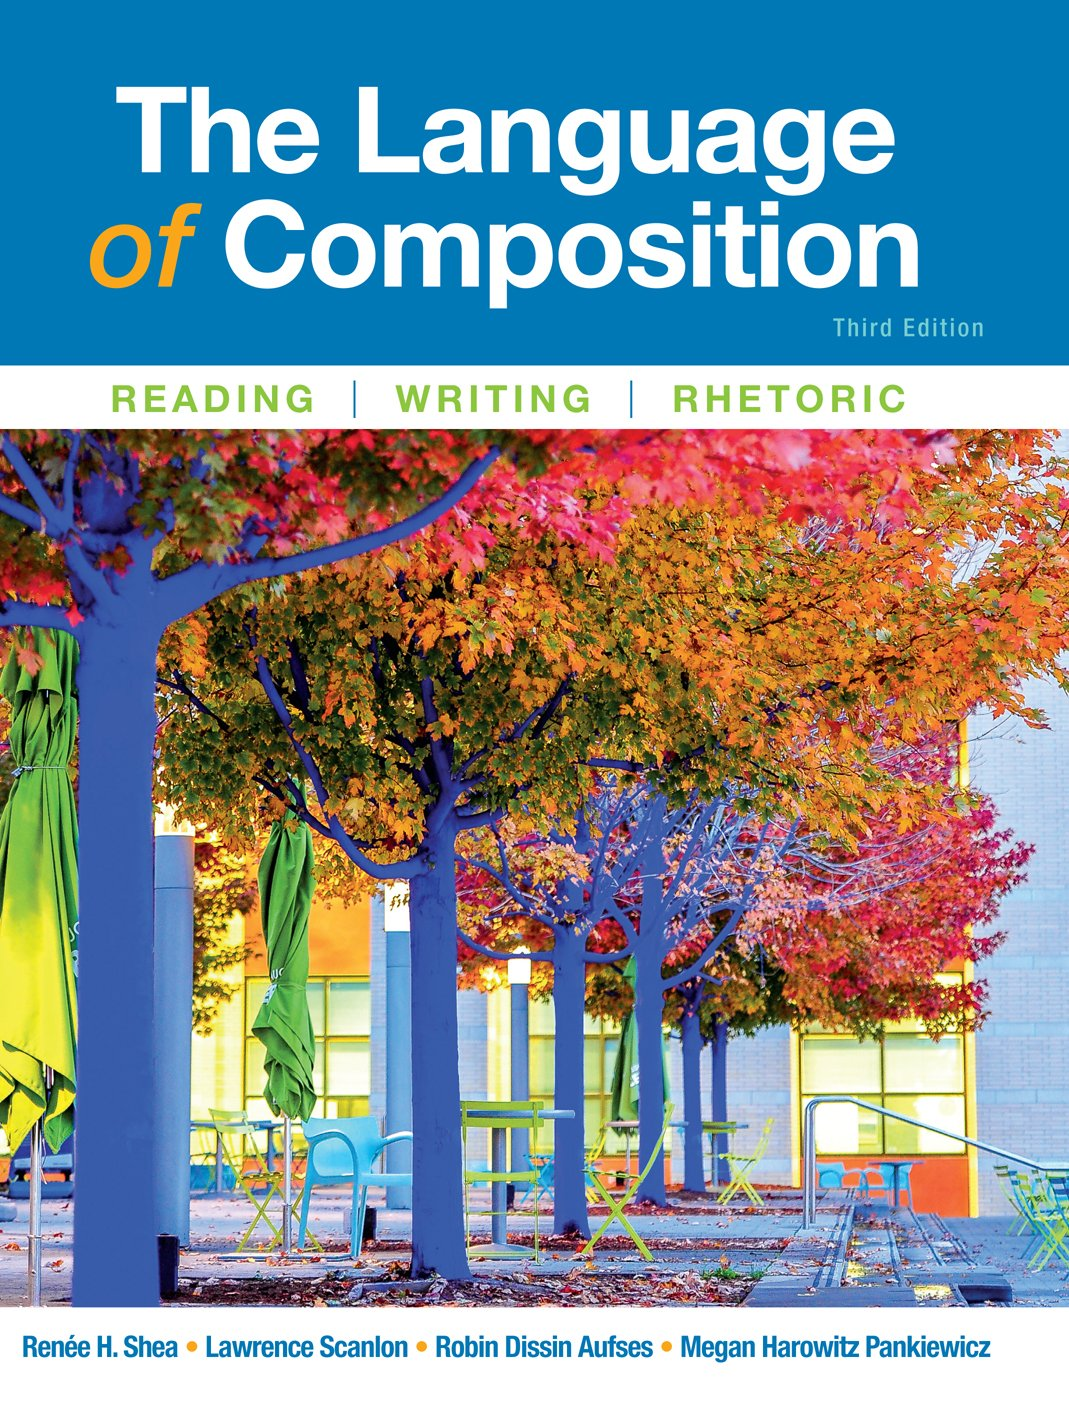 The Language Of Composition Kindle Edition By Shea Renee Scanlon Lawrence Aufses Robin Pankiewicz Megan Reference Kindle Ebooks Amazon Com